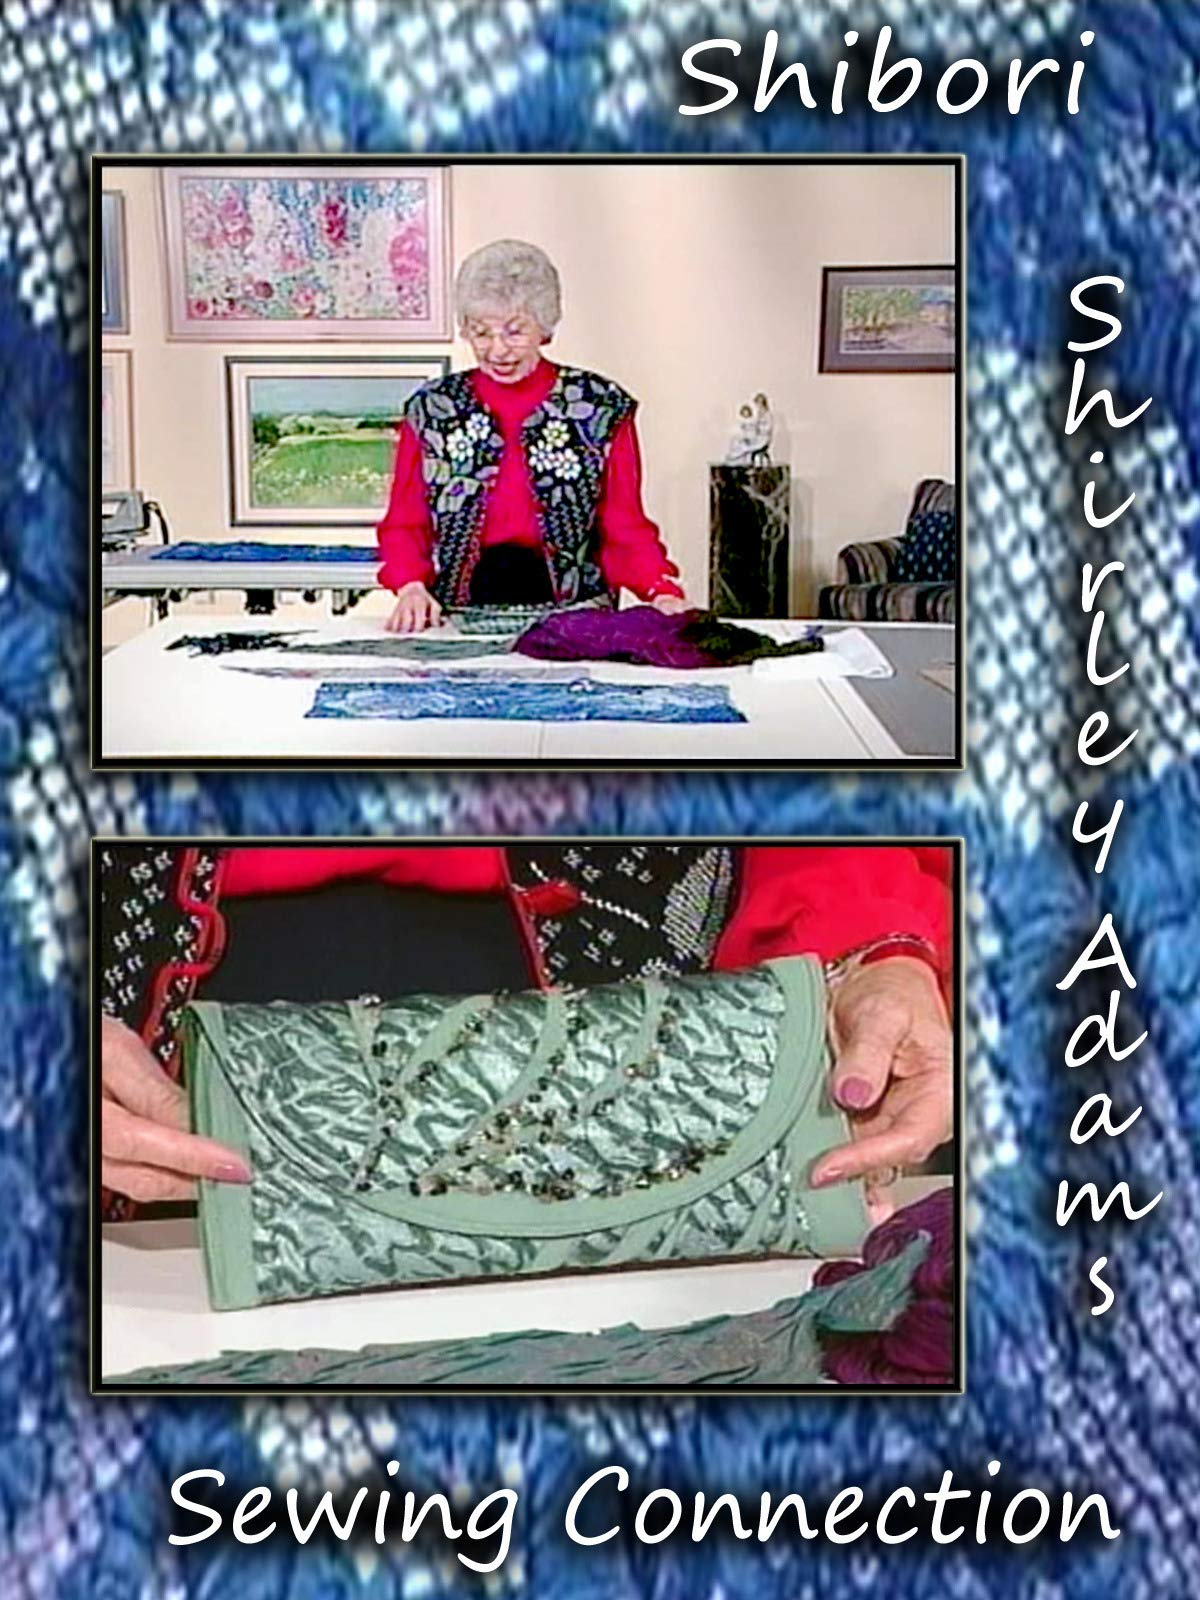 Shibori with Shirley Adams Sewing Connection